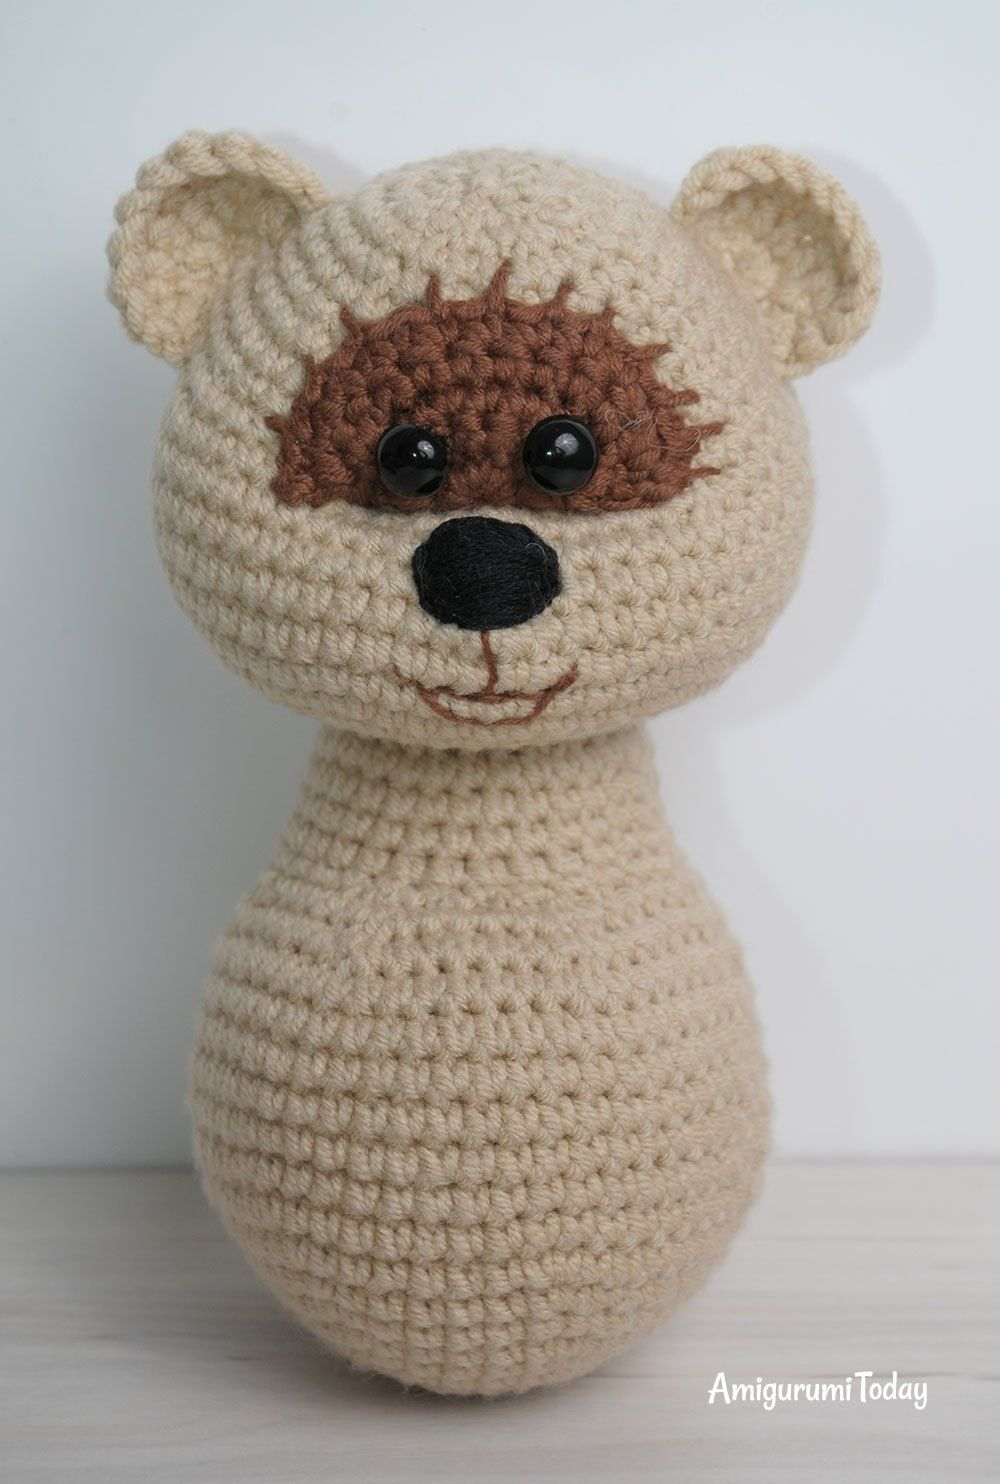 Amigurumi honey teddy bears - free pattern | a a | Pinterest ...